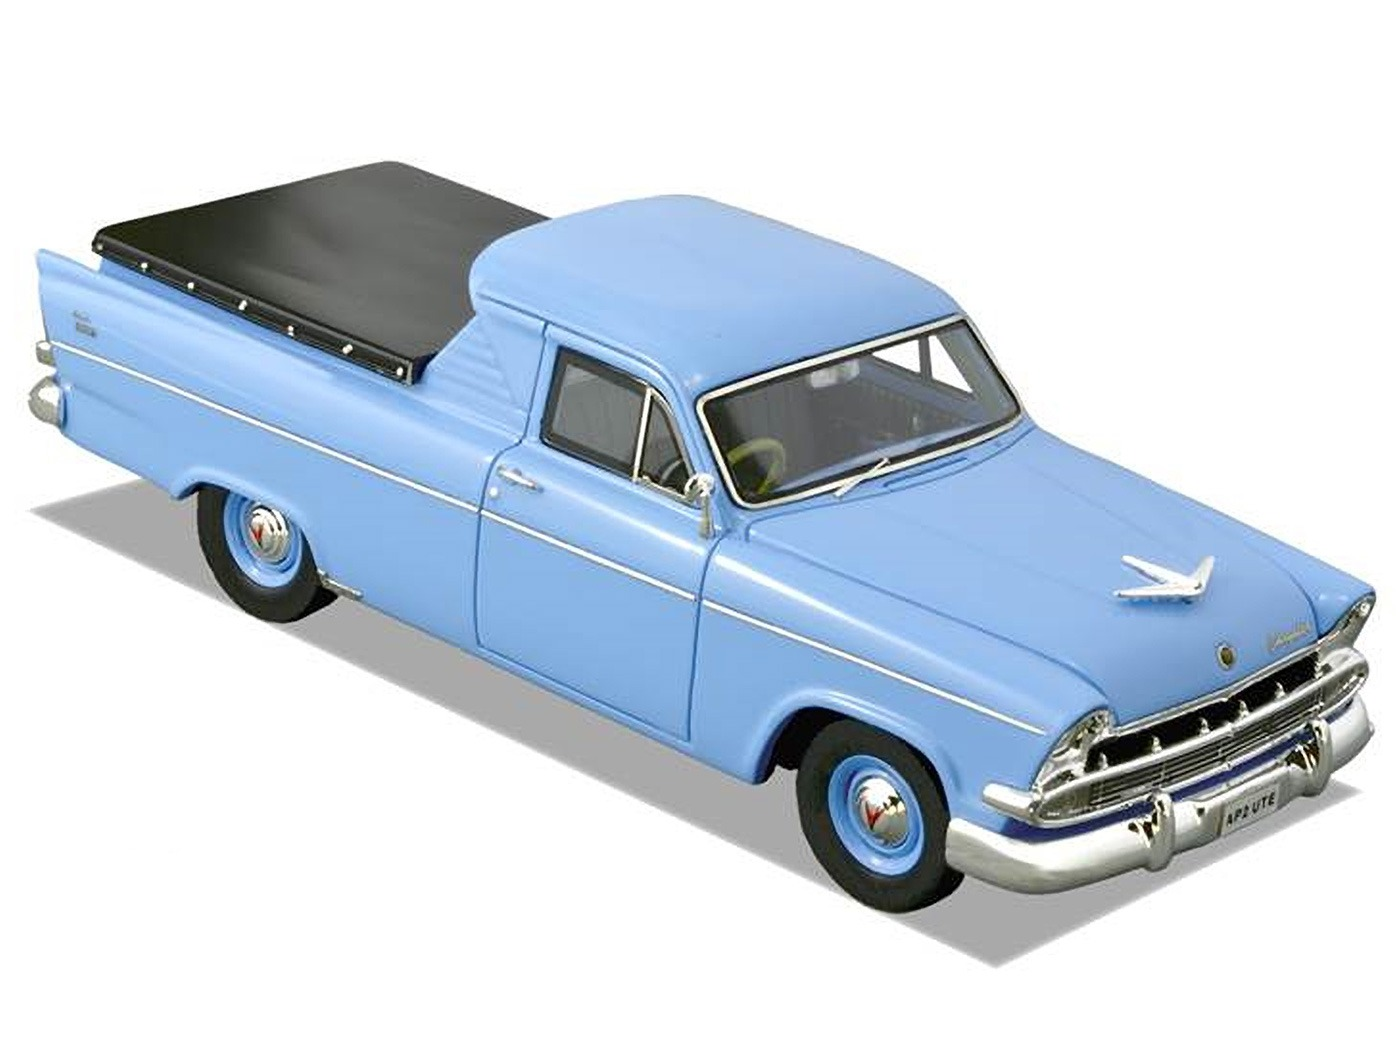 Chrysler AP2 Ute – Bedford Blue